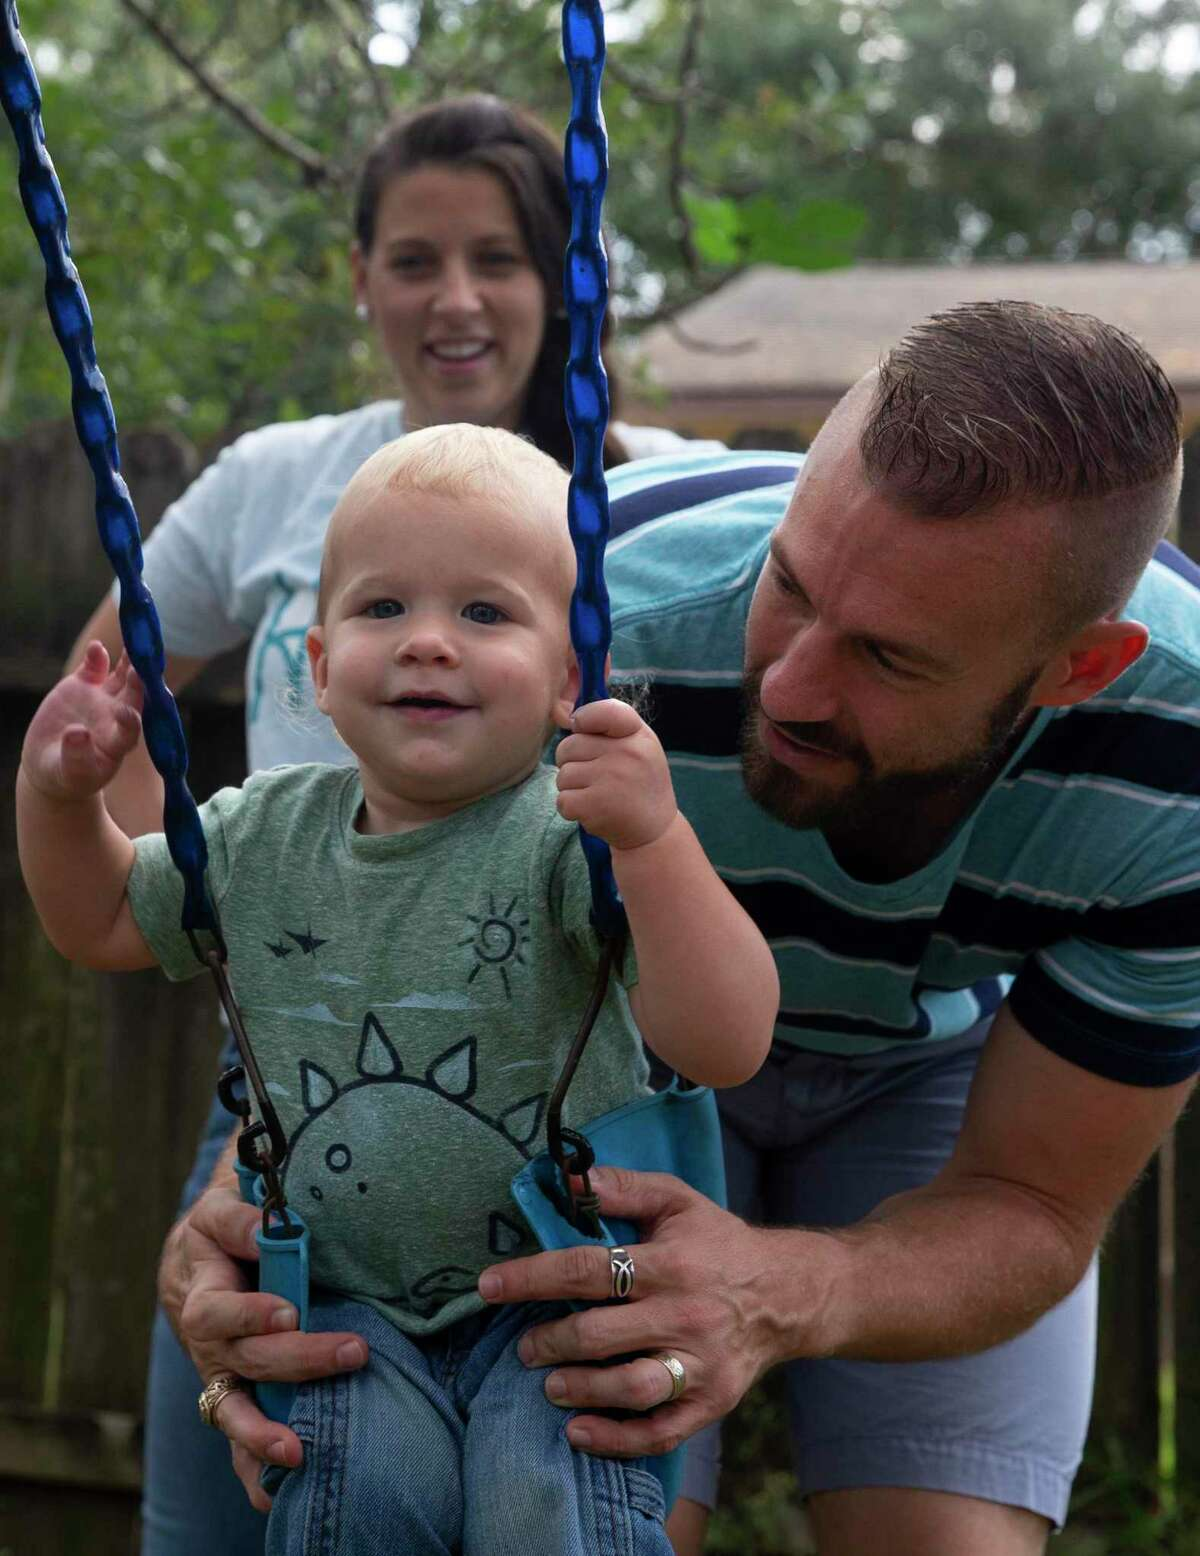 Matt Nyert, 35, helps his son, Zeke, 1, play swing in the family backyard Thursday, Oct. 15, 2020, in Spring. Hillary Nyert, 36, and Matt lost their daughter, Kate, in 2017 when Hillary was at 37 weeks pregnancy. They now have two children, Zoë, 4, and Zeke.